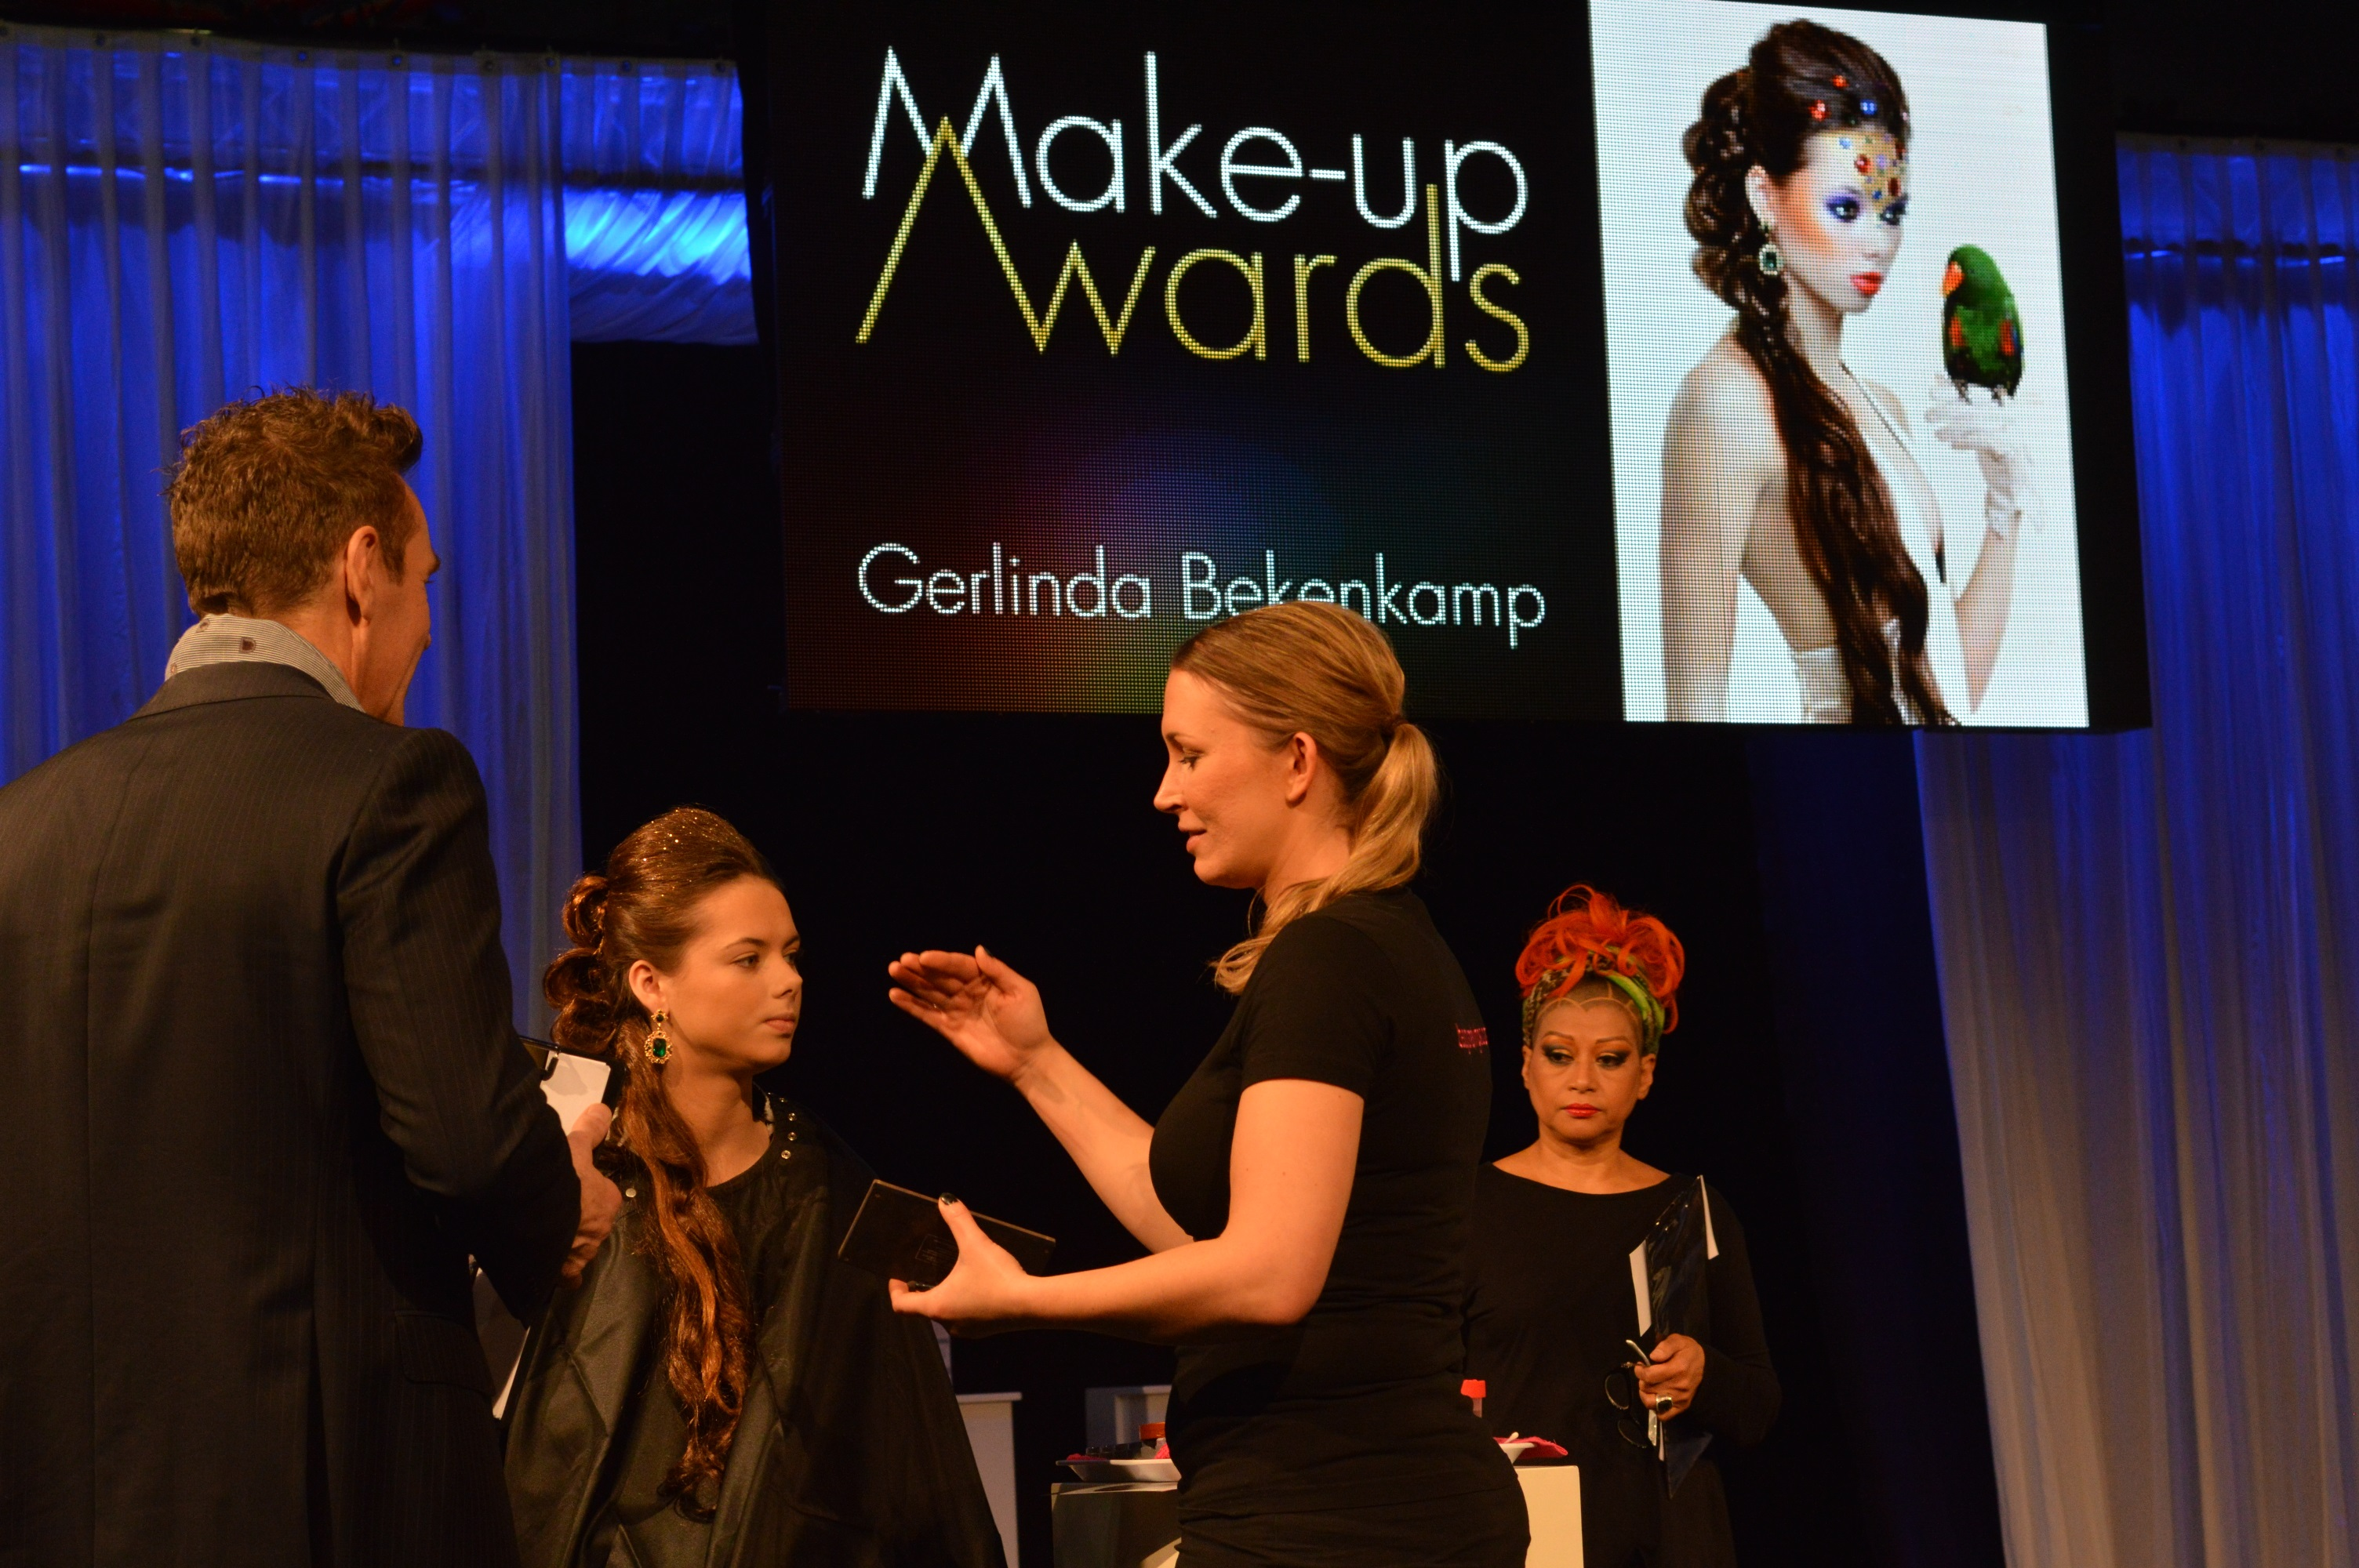 Ook nog even in beeld tijdens de make up awards - Blog Carine Belzon Fotografie